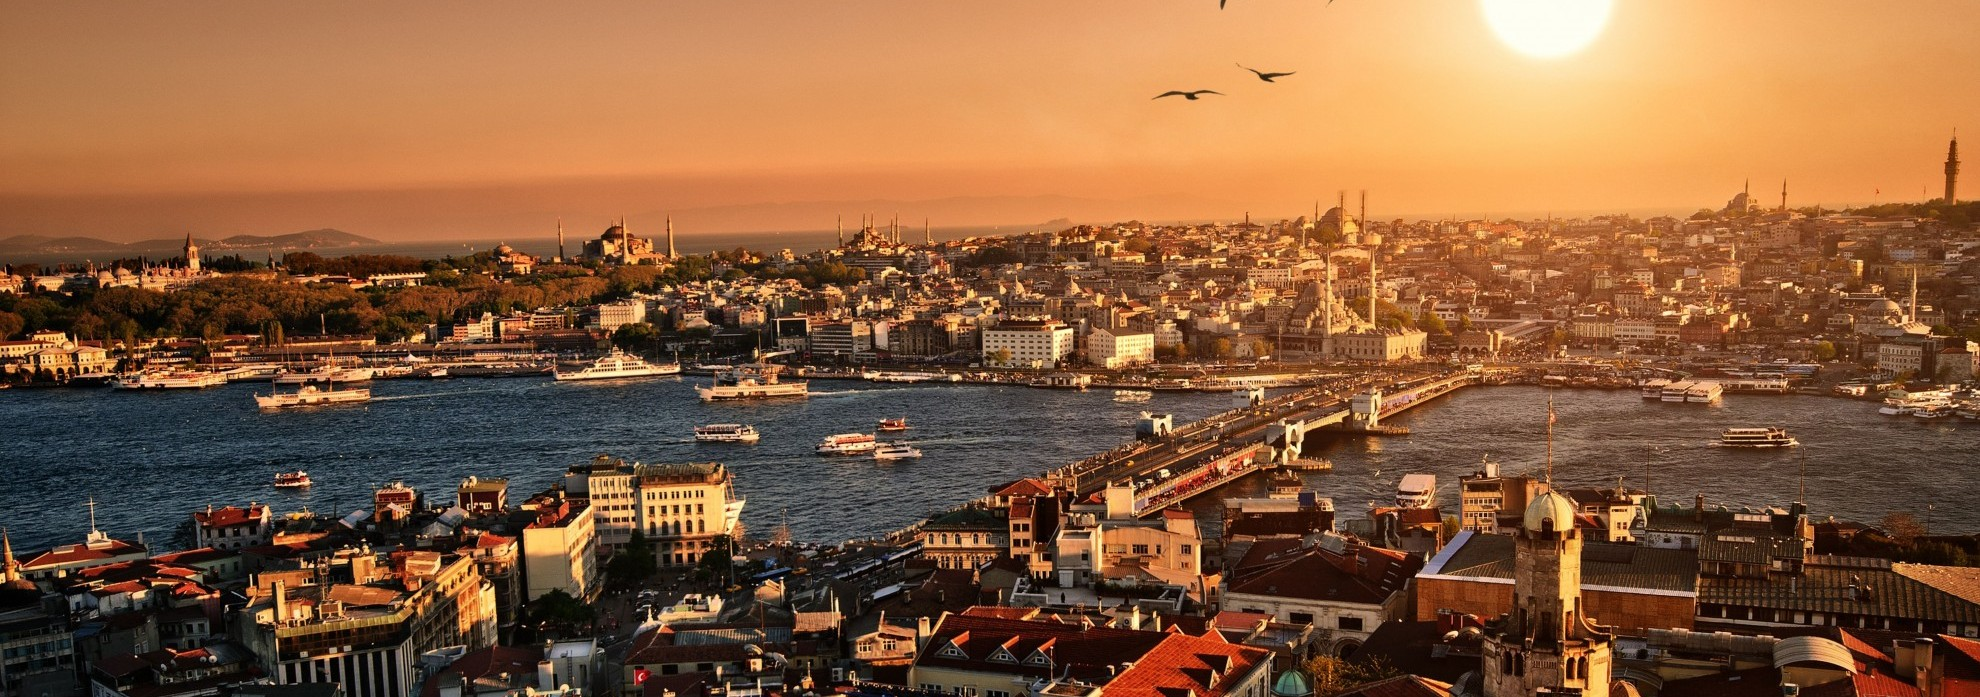 evening-in-istanbul-e1412162646781